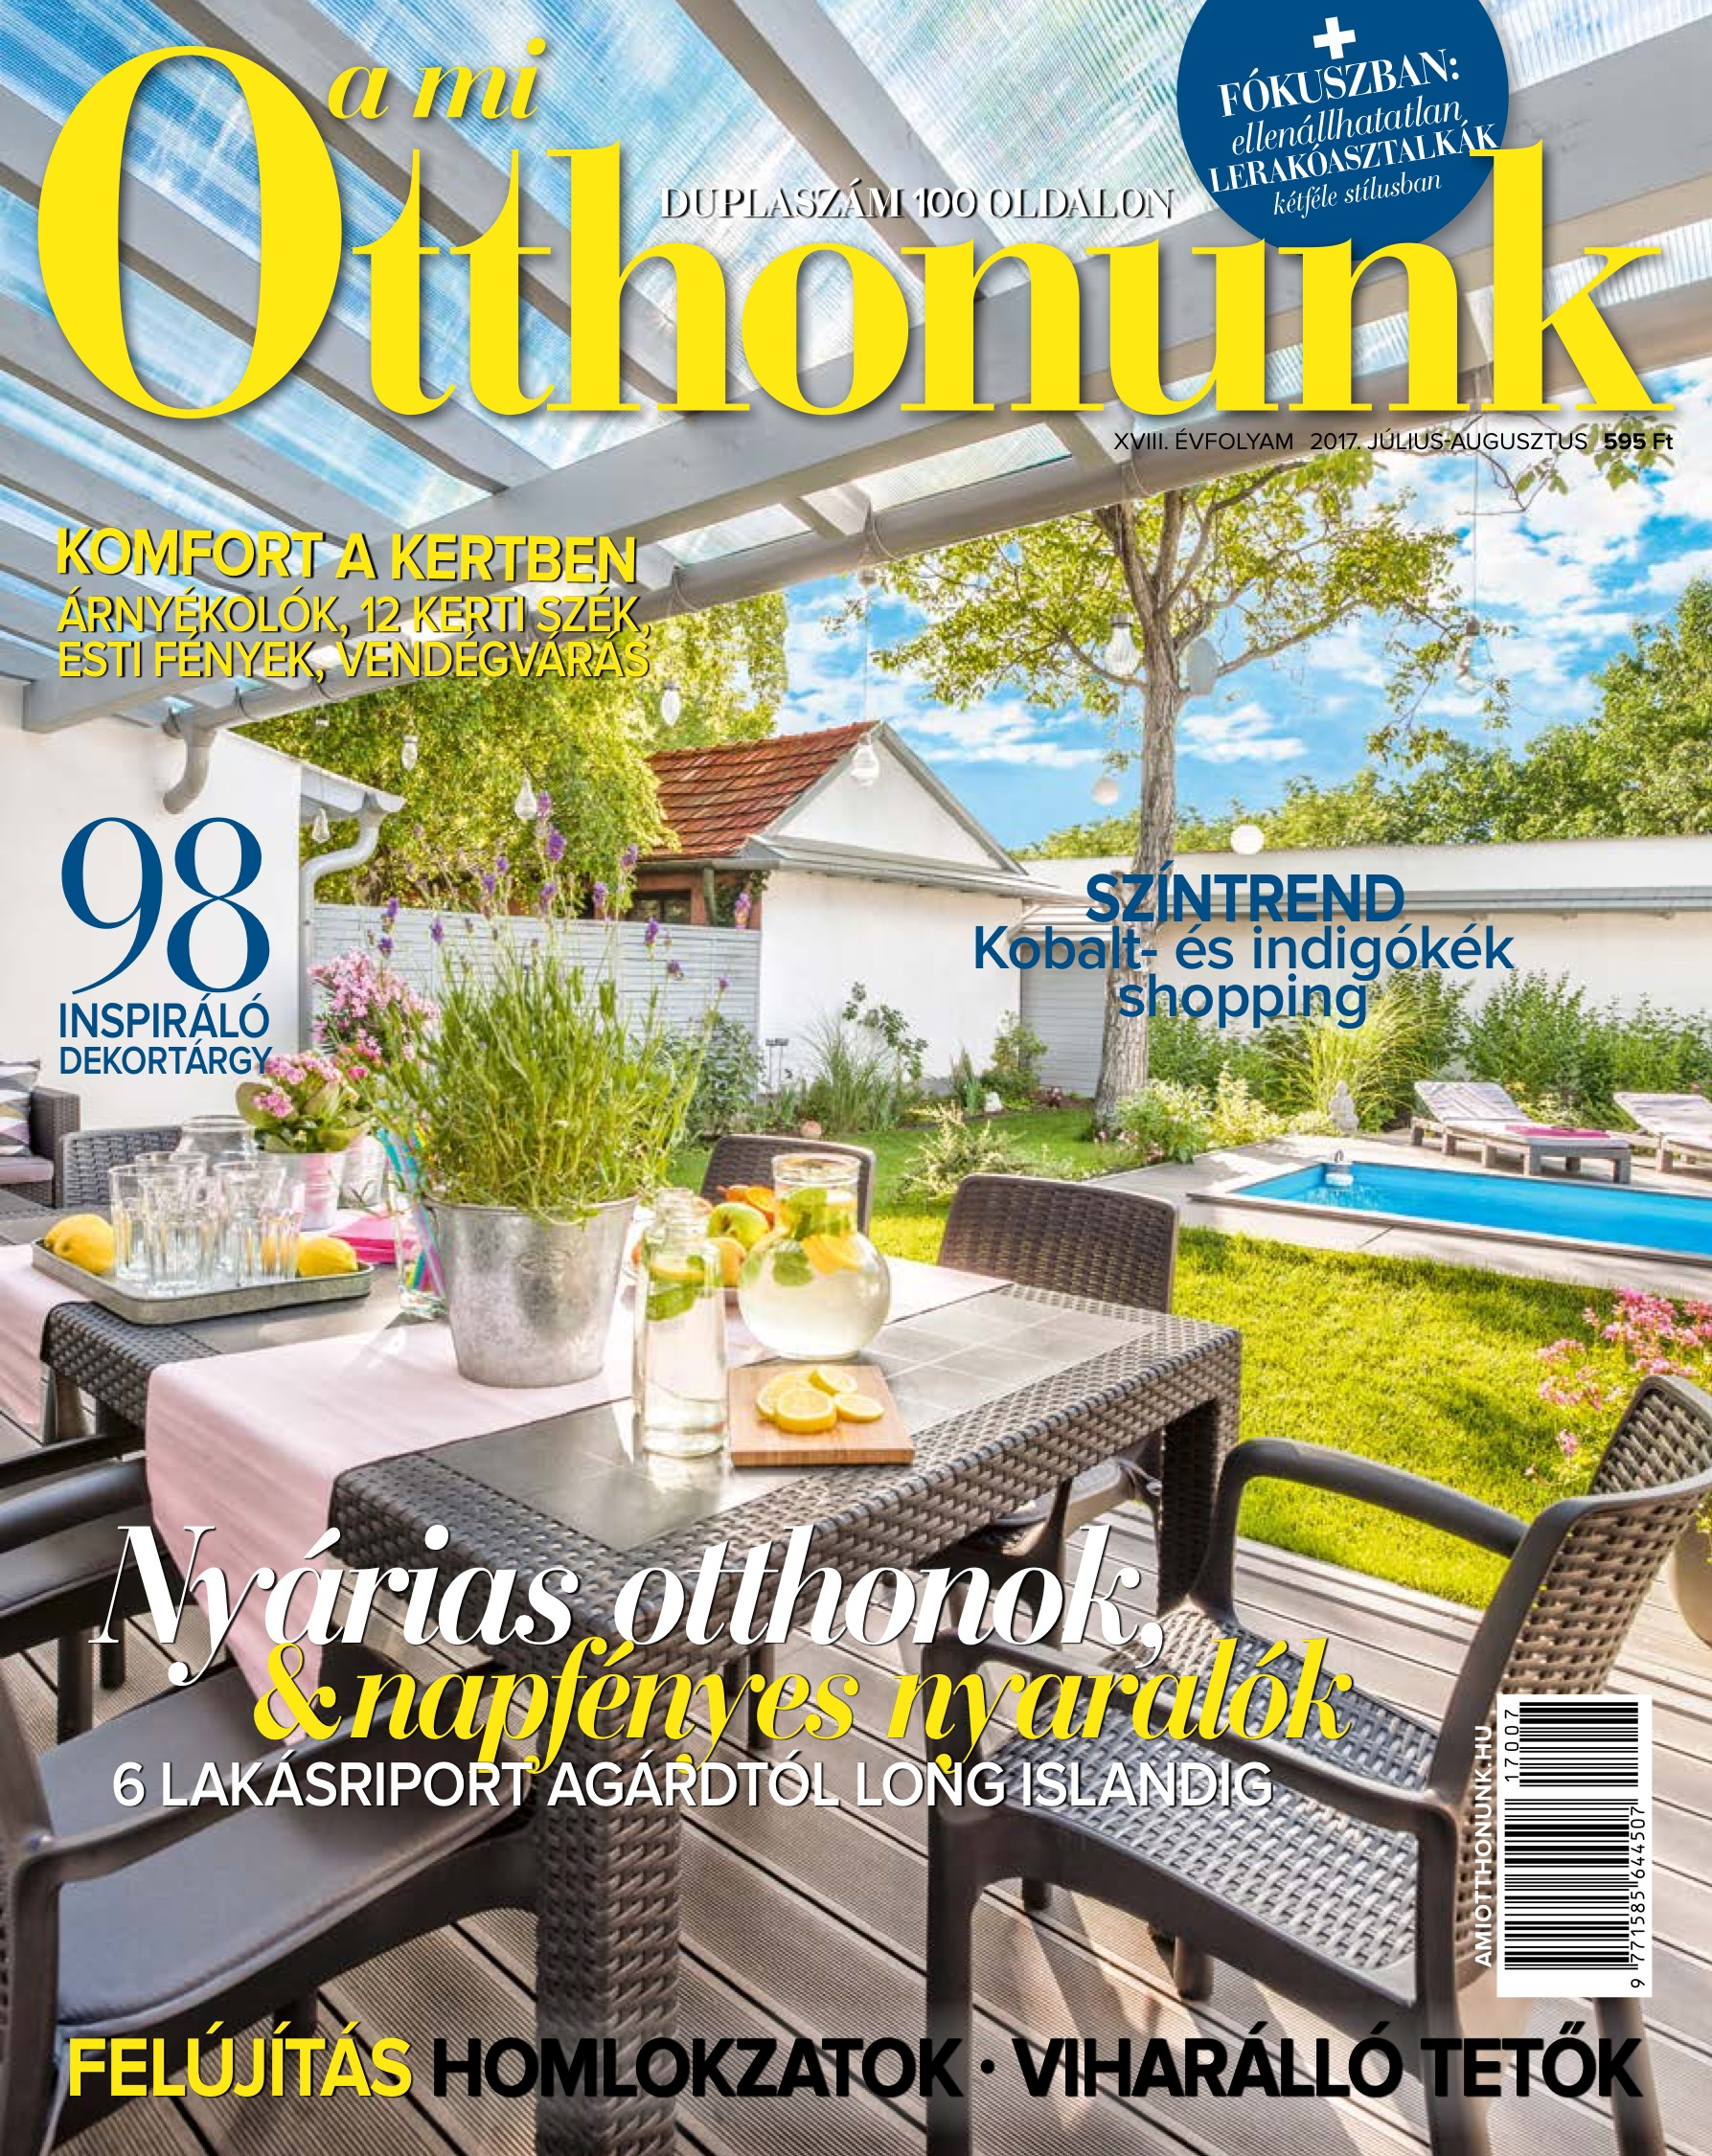 Ottominunk front cover JULY of Caudwell Montauk.jpeg